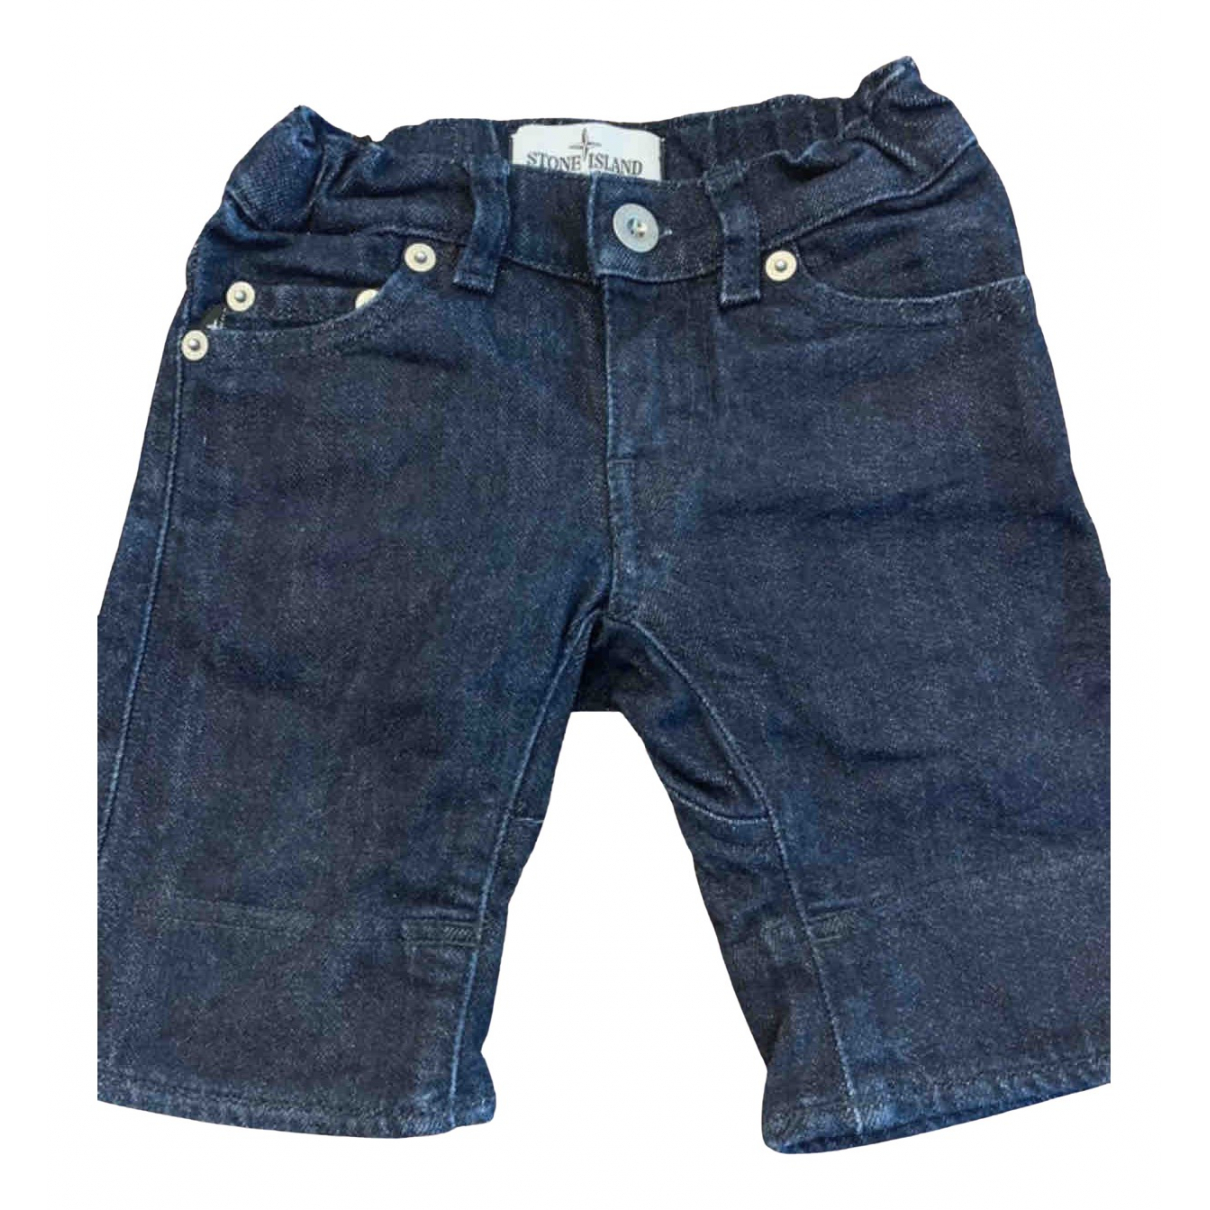 Stone Island \N Blue Denim - Jeans Shorts for Kids 2 years - up to 86cm FR